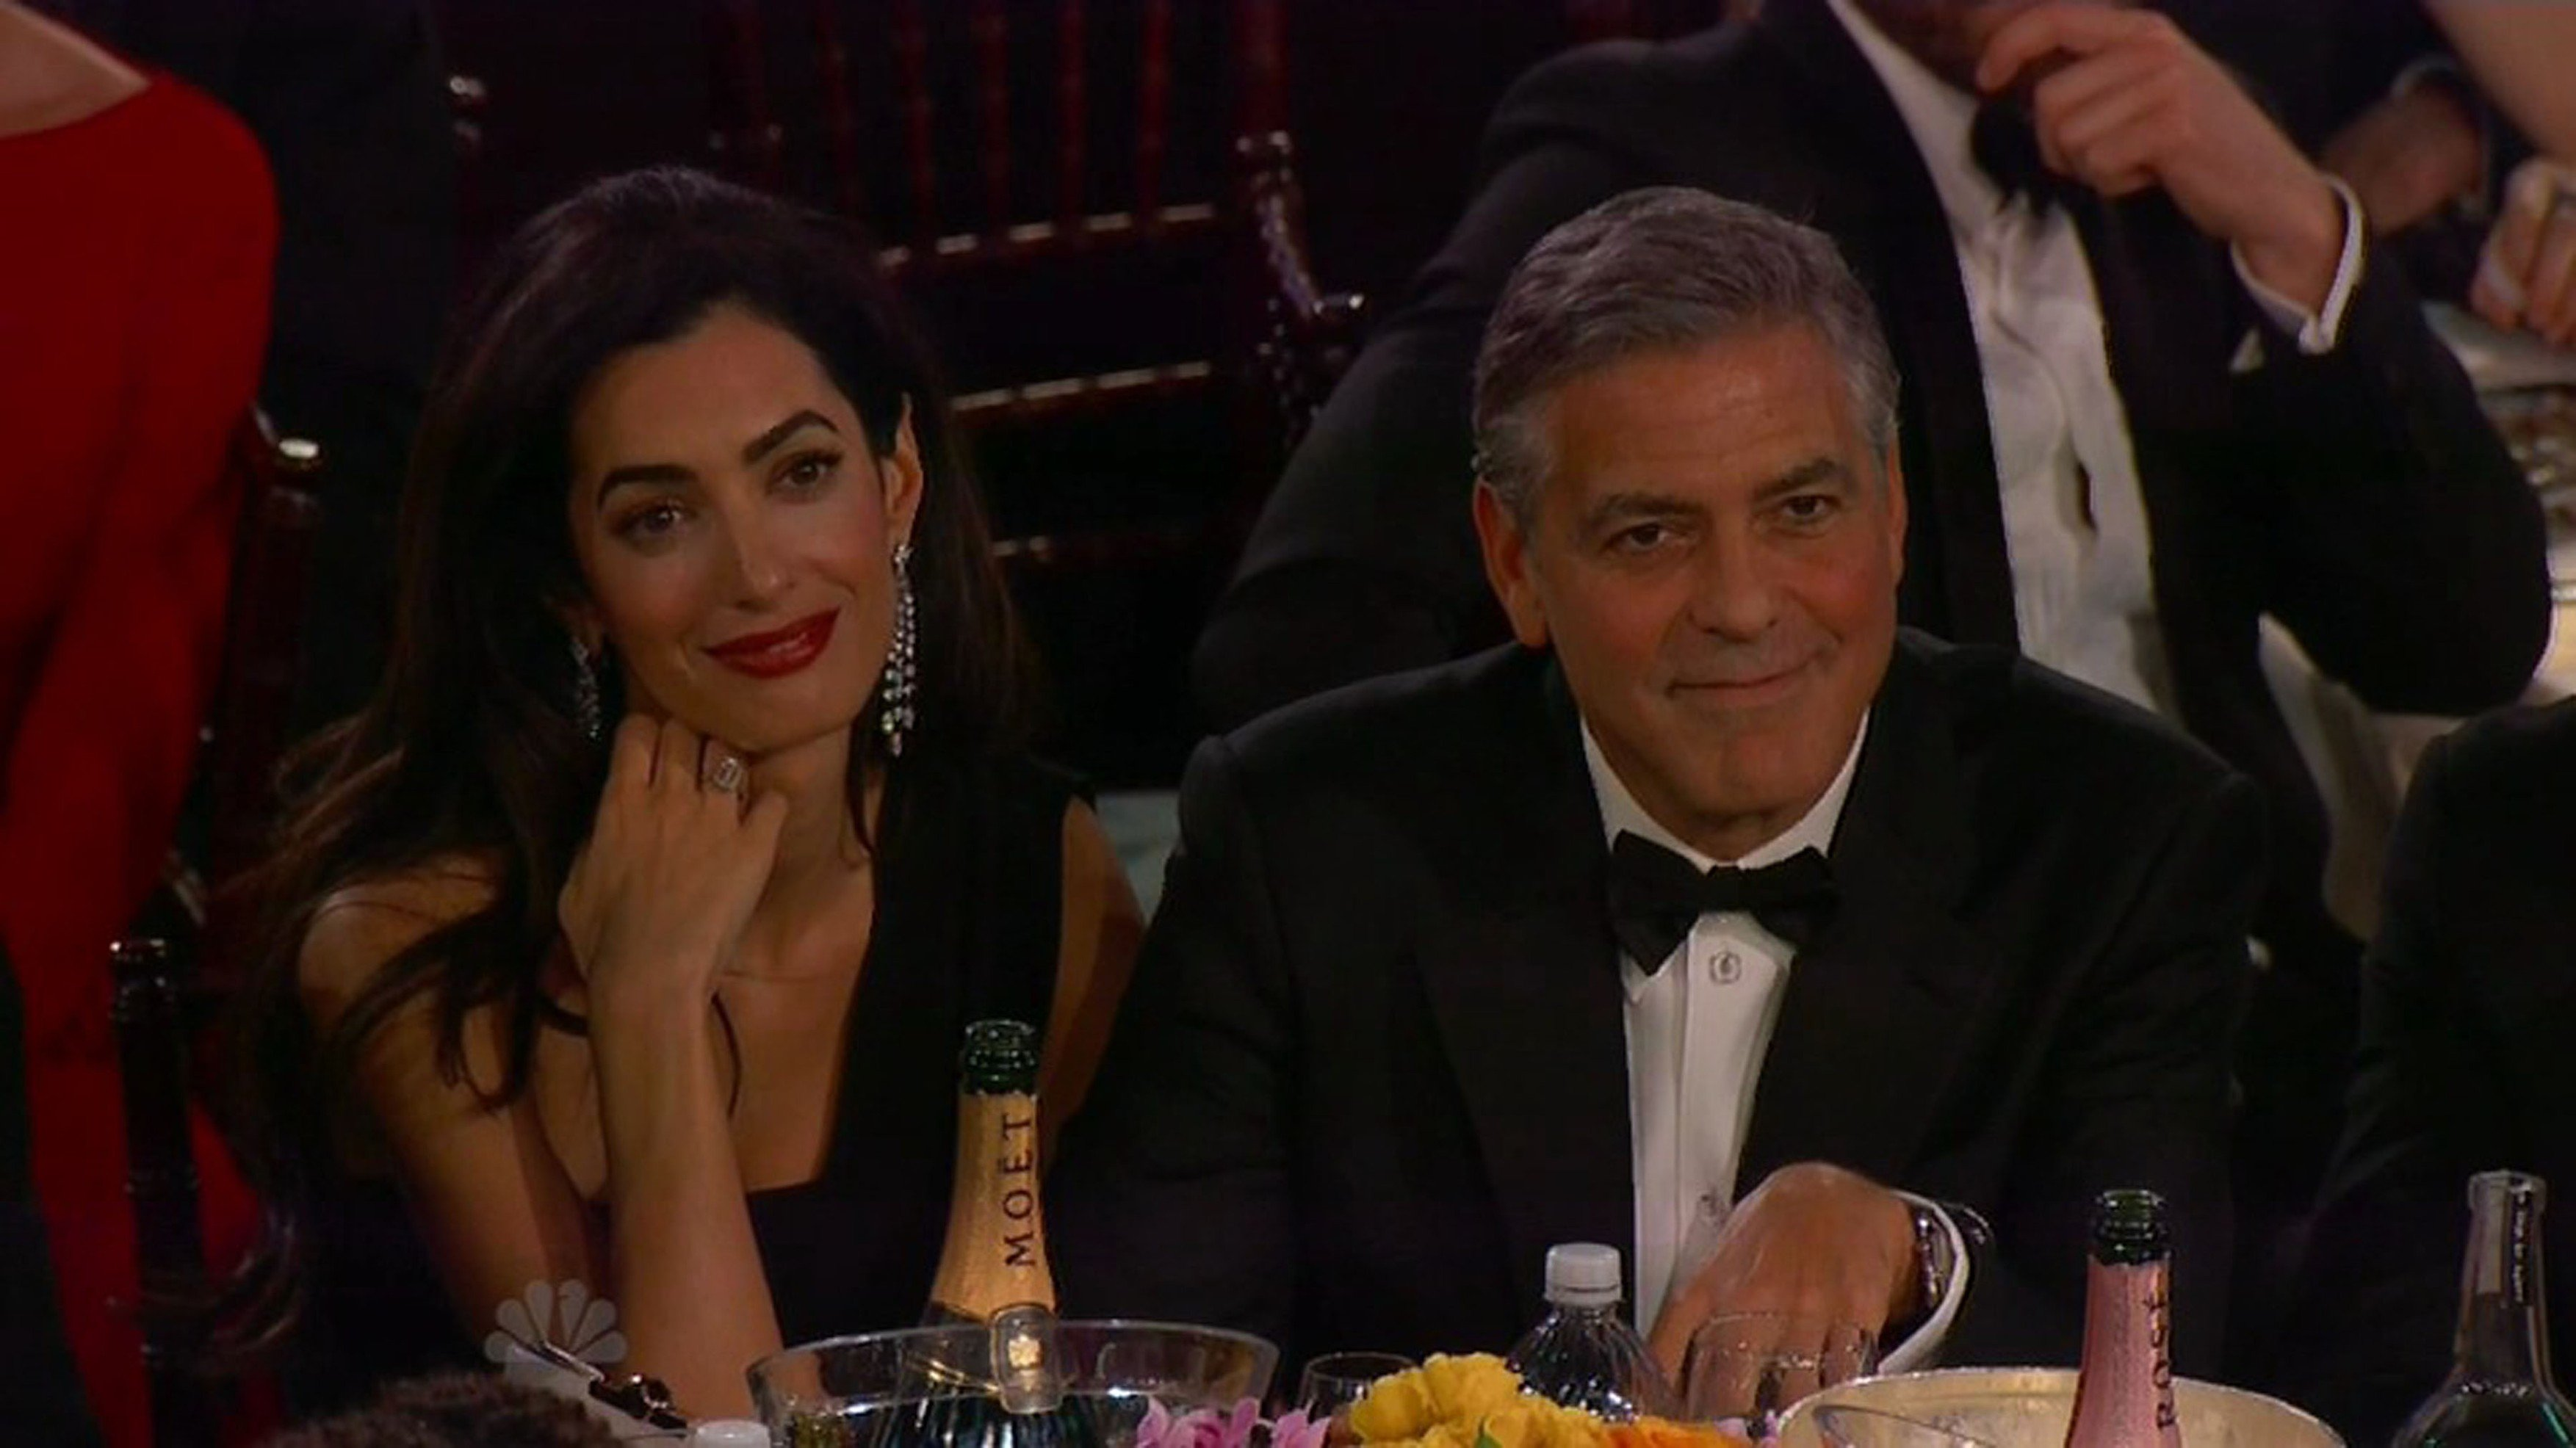 12 January 2015 - Los Angeles - USA  **** STRICTLY NOT AVAILABLE FOR USA ***  Amal Clooney caught out chatting and not paying attention during Golden Globe tribute to new husband George Clooney. The award ceremony novice was caught on camera paying attention as Julianna Margulies and Don Cheadle honoured George  with the Cecil B DeMille Lifetime Achievement Award at the Golden Globes in Los Angeles. As the actors said their rather long speech, the British lawyer had a little chat to her table mate Bill Murray not realising the camera was on her. Looking away from the stage to face Bill, Amal suddenly became aware that all eyes were on her and quickly turned back on the charm smiling sweetly at the camera. She then spent the rest of the tribute either smiling at the cameras or looking lovingly and Clooney by her side., Image: 215154048, License: Rights-managed, Restrictions: PLEASE CREDIT AS PER BYLINE *UK CLIENTS - PLEASE PIXELATE CHILDS FACE BEFORE PUBLICATION **UK CLIENTS MUST CALL PRIOR TO TV OR ONLINE USAGE, Model Release: no, Credit line: Profimedia, Xposurephotos